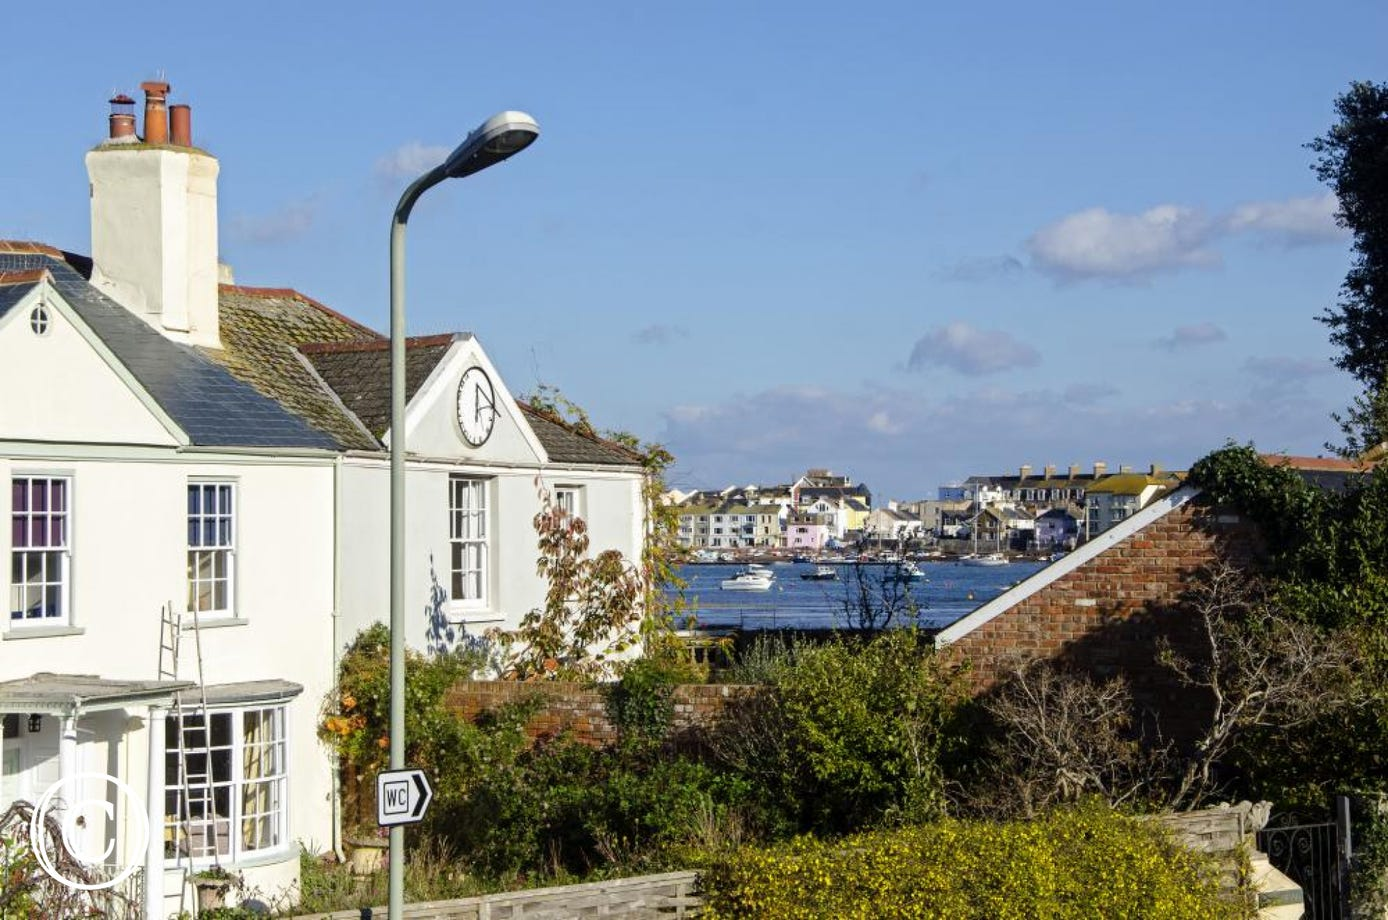 Oyster Cottage, Shaldon - View from window